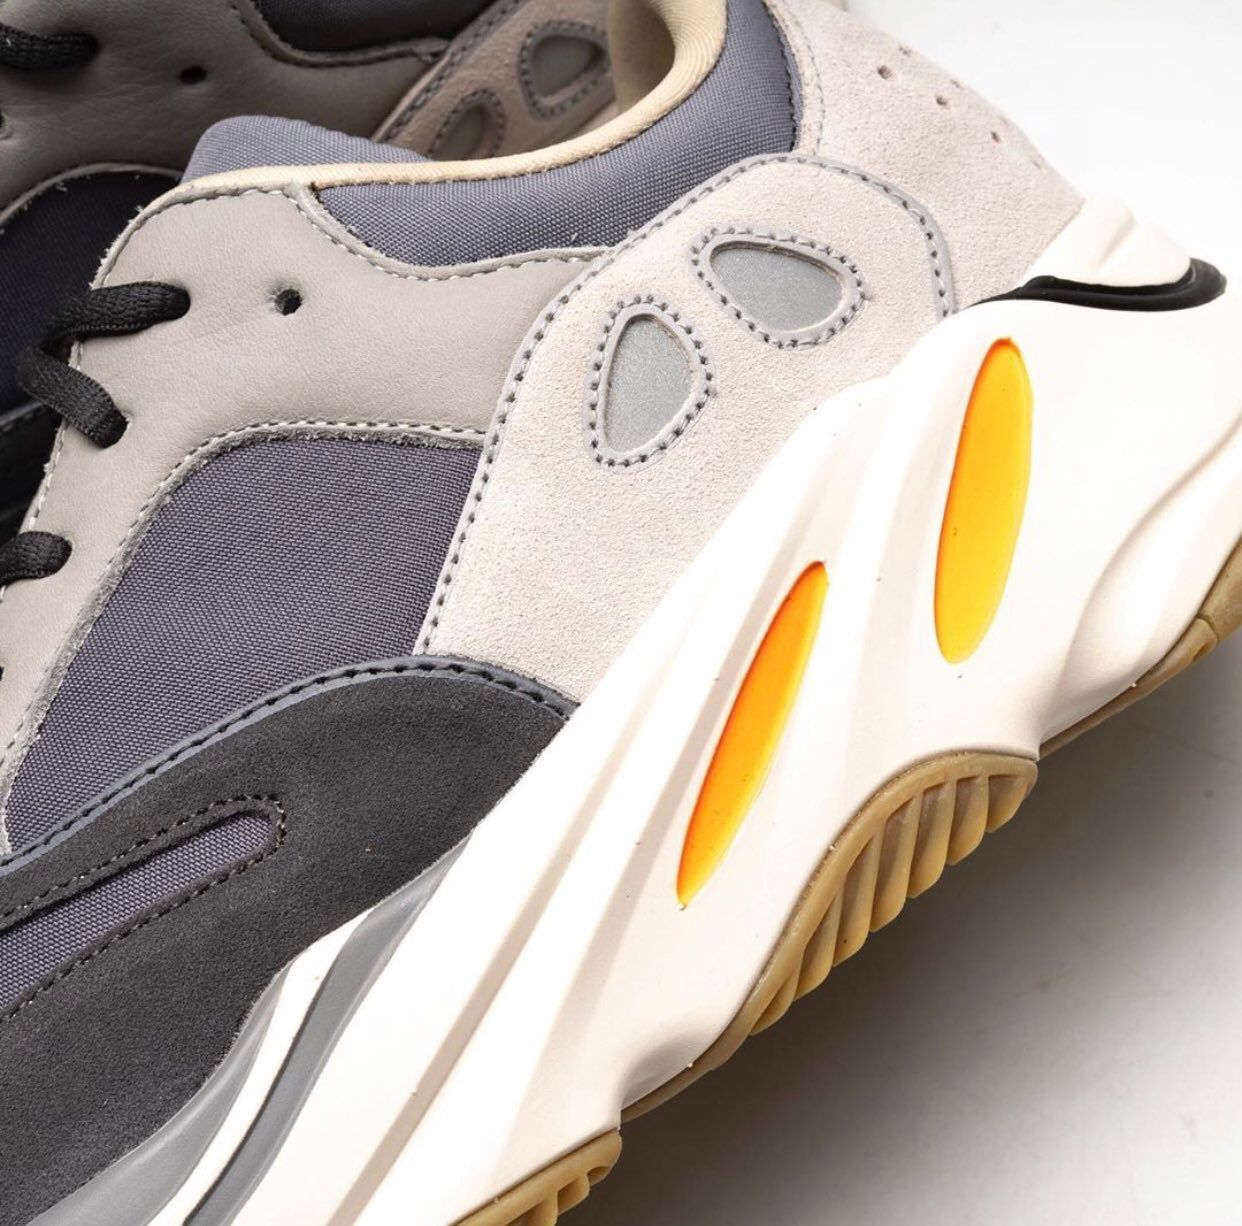 "Adidas Yeezy Boost 700 ""Magnet"" Coming This Fall: Best Look Yet"